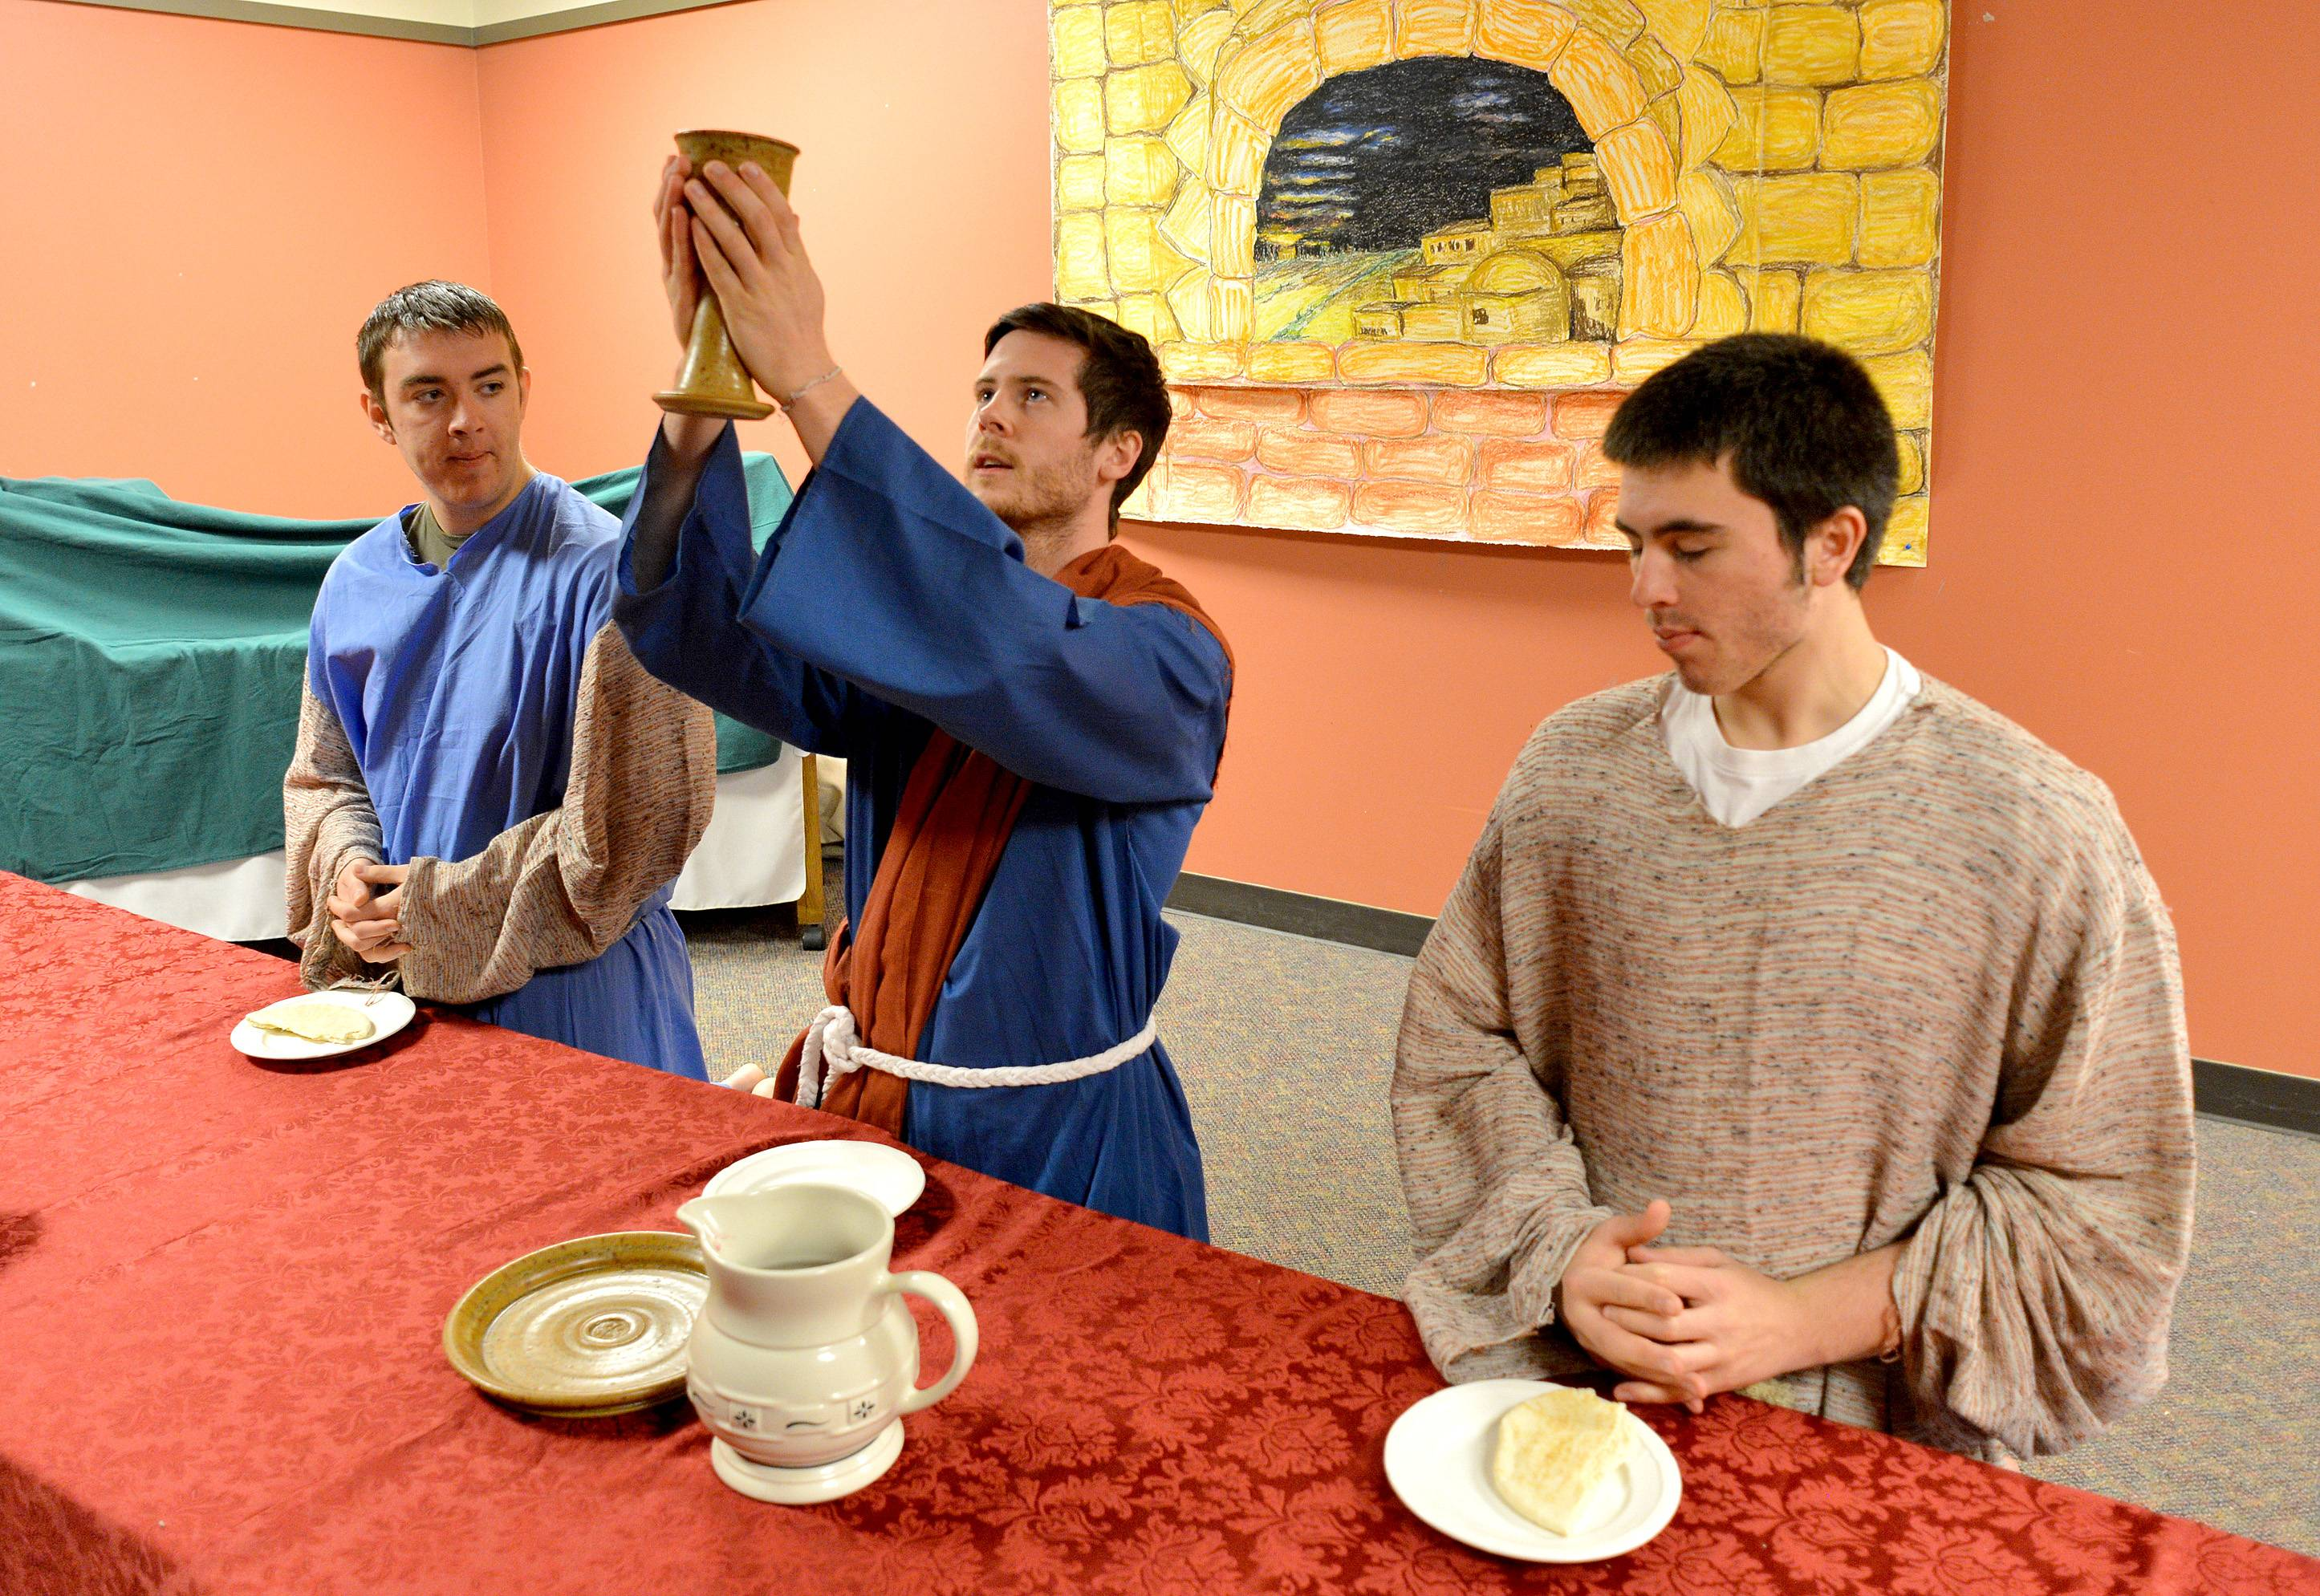 Jesus, portrayed by Conor Hughes, center, participates in the Last Supper with two of his disciples, Peter portrayed by Nathanael Juliot, left, and Judas, portrayed by Sean Bary during Good Friday observations at Naperville's Alleluia! Lutheran Church.